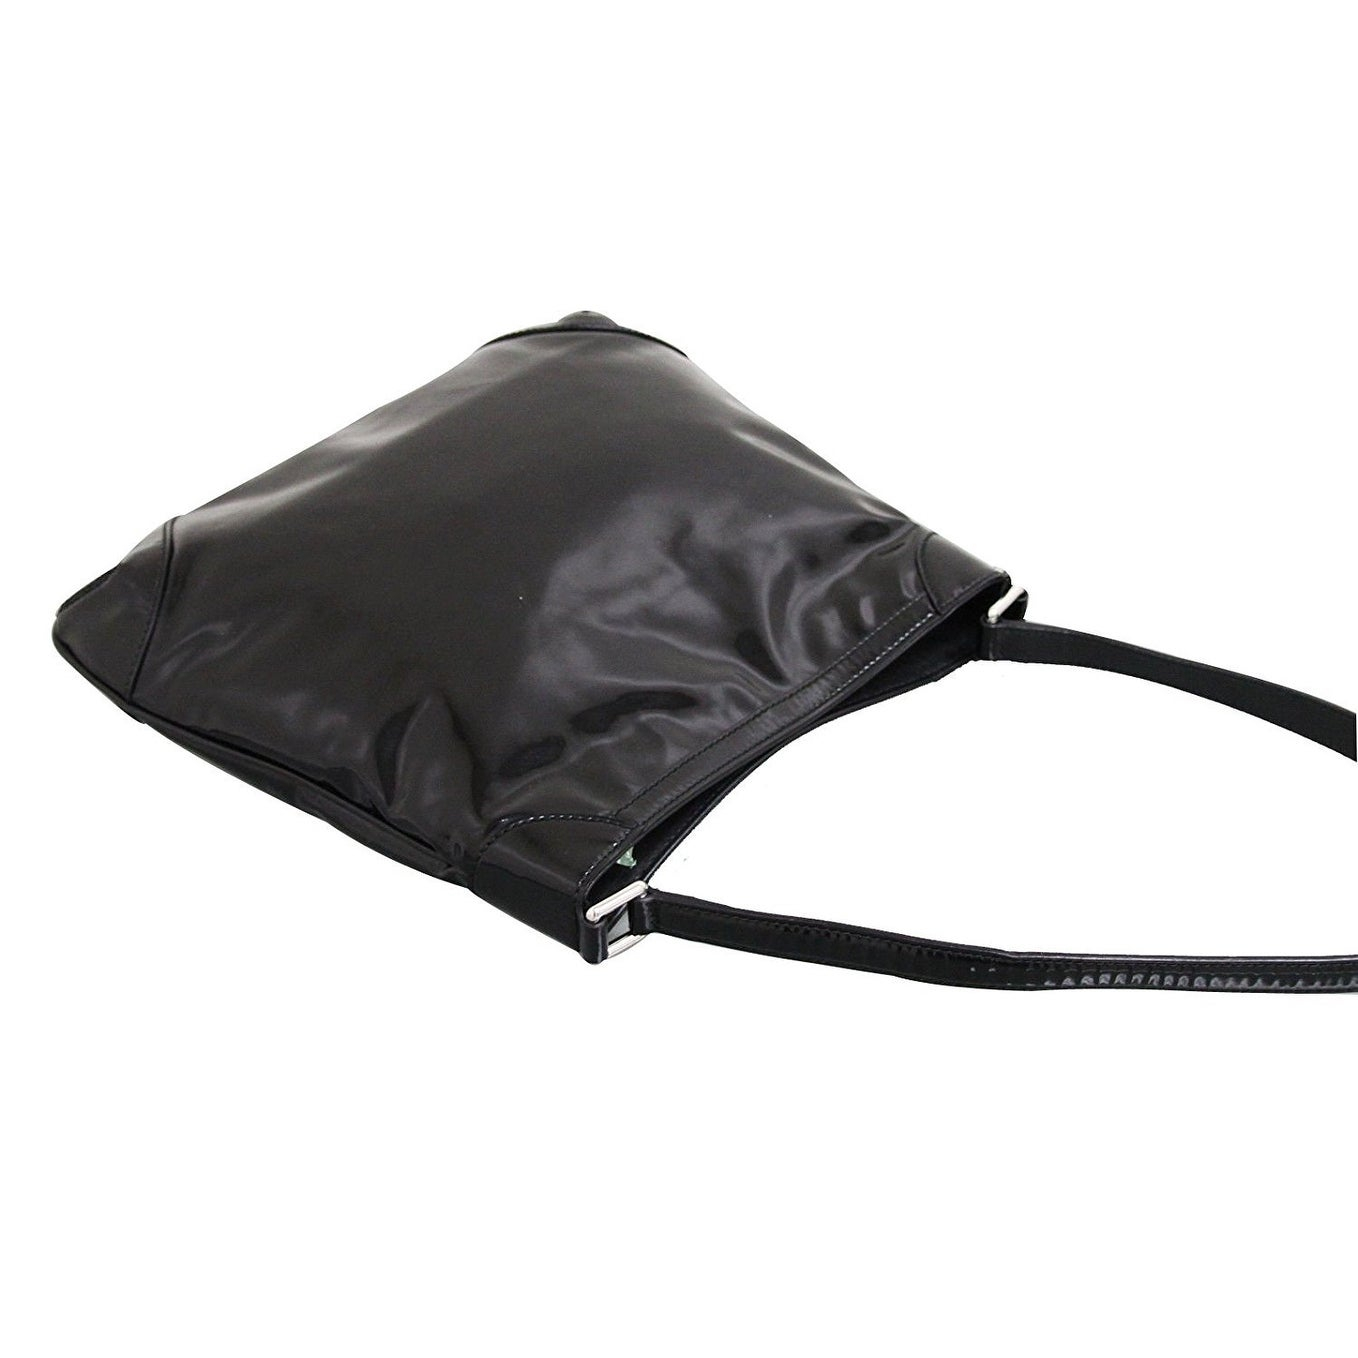 21e0bec4404 Shop Gucci Women s Black Patent Leather Hobo Capri Shoulder Bag 257296 1000  - One Size - Free Shipping Today - Overstock - 27603134